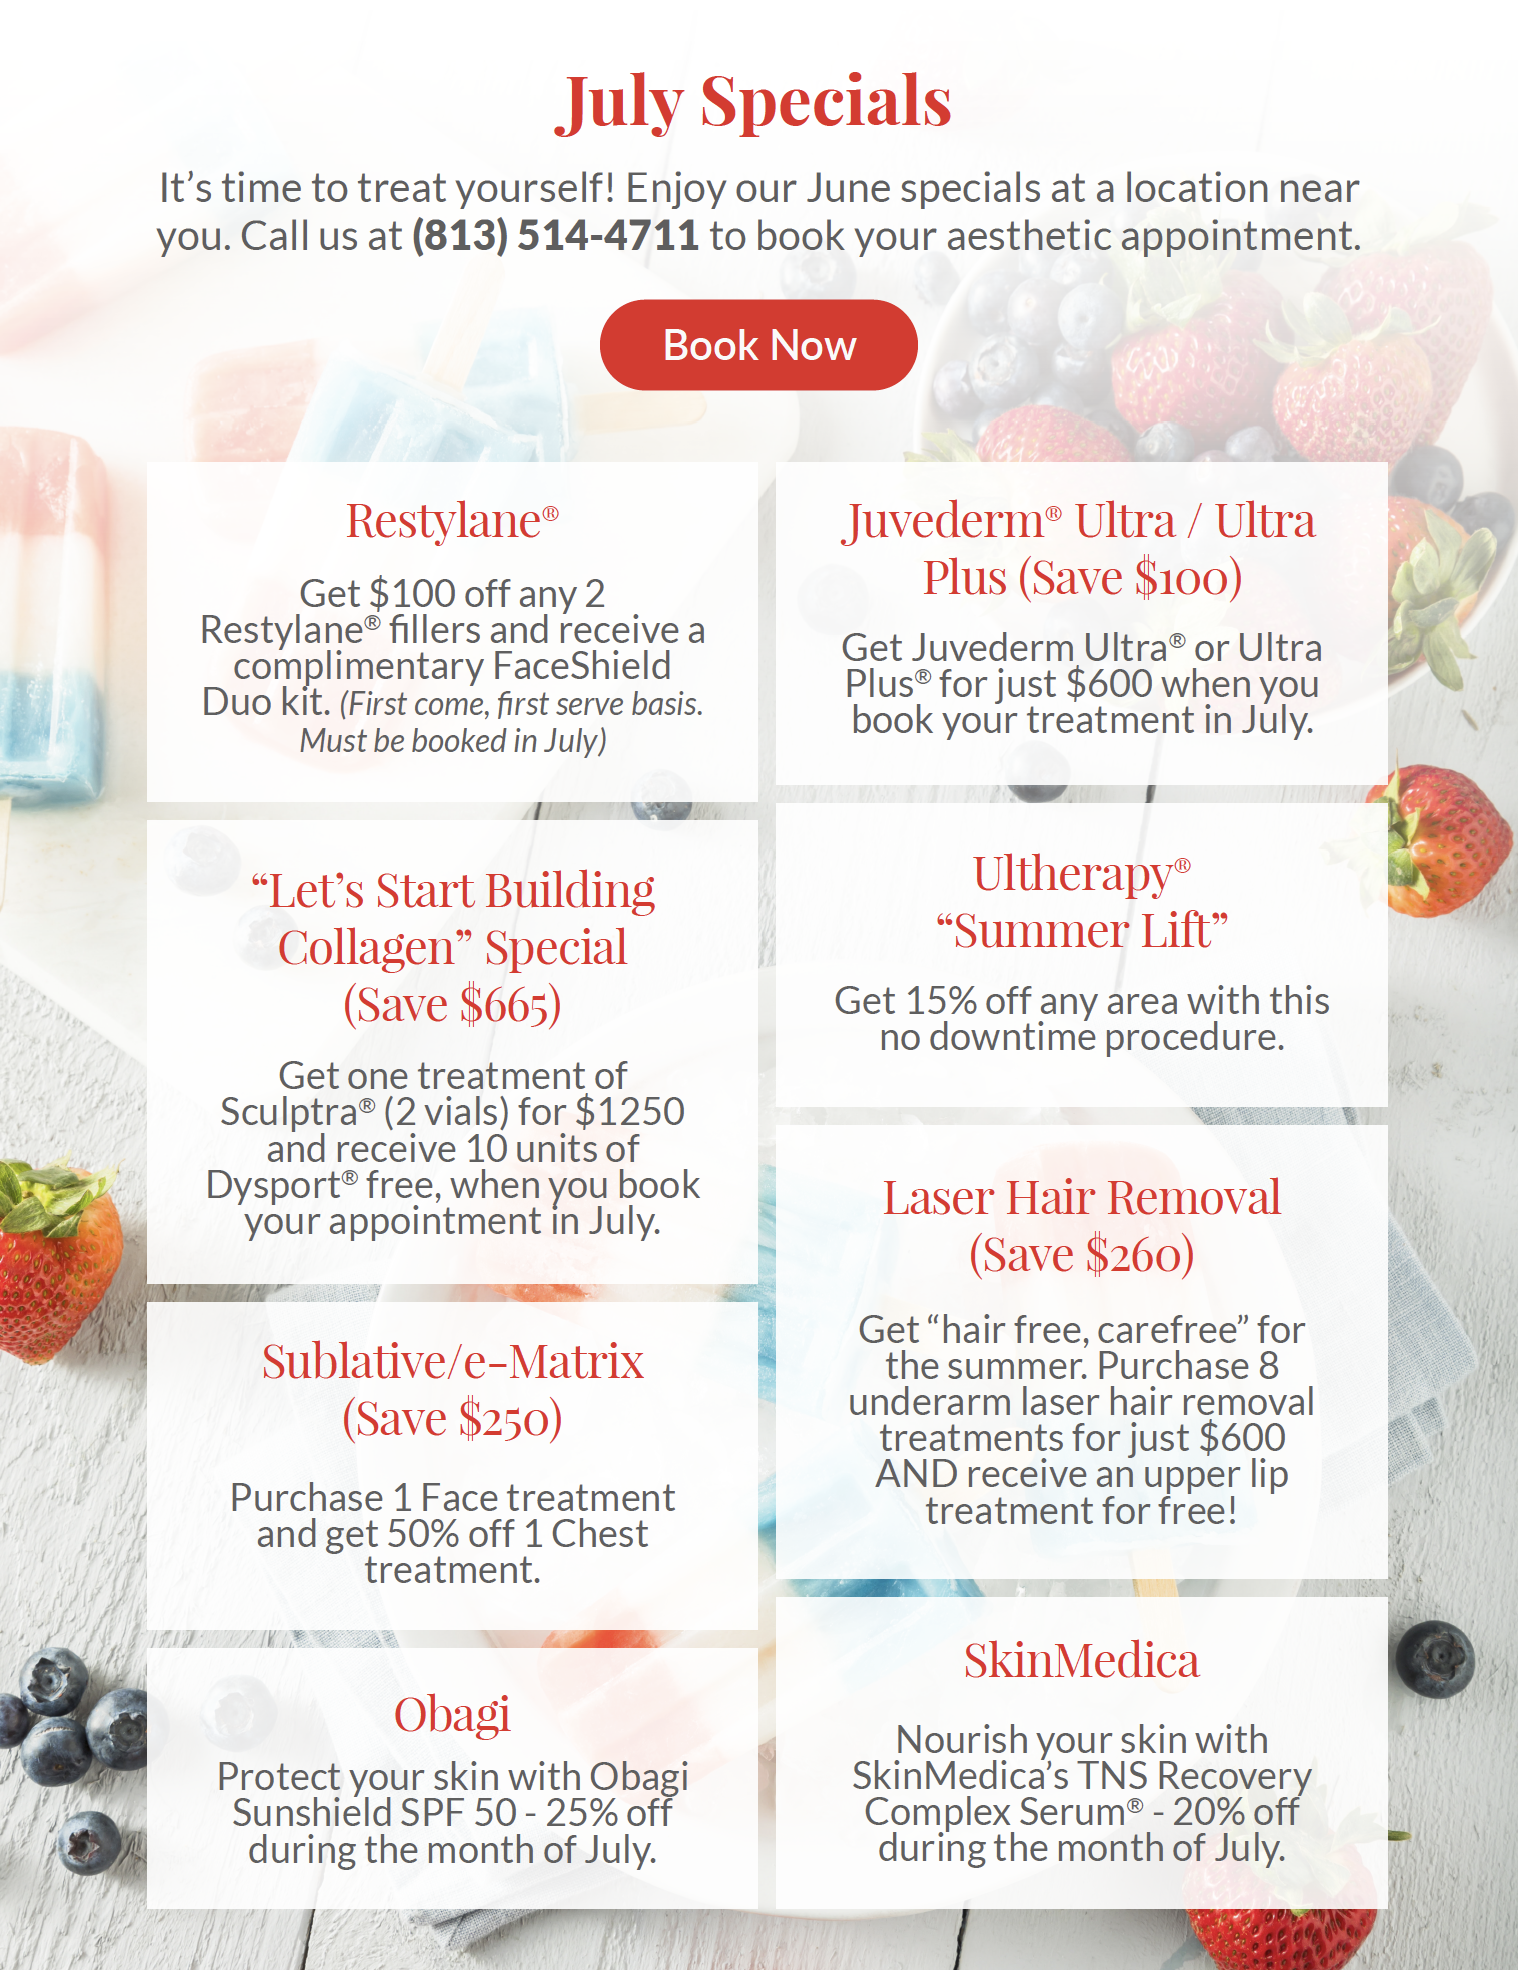 July specials, discount botox, academic alliance in dermatology, tampa dermatology, tampa dermatologist, dermatologist in tampa